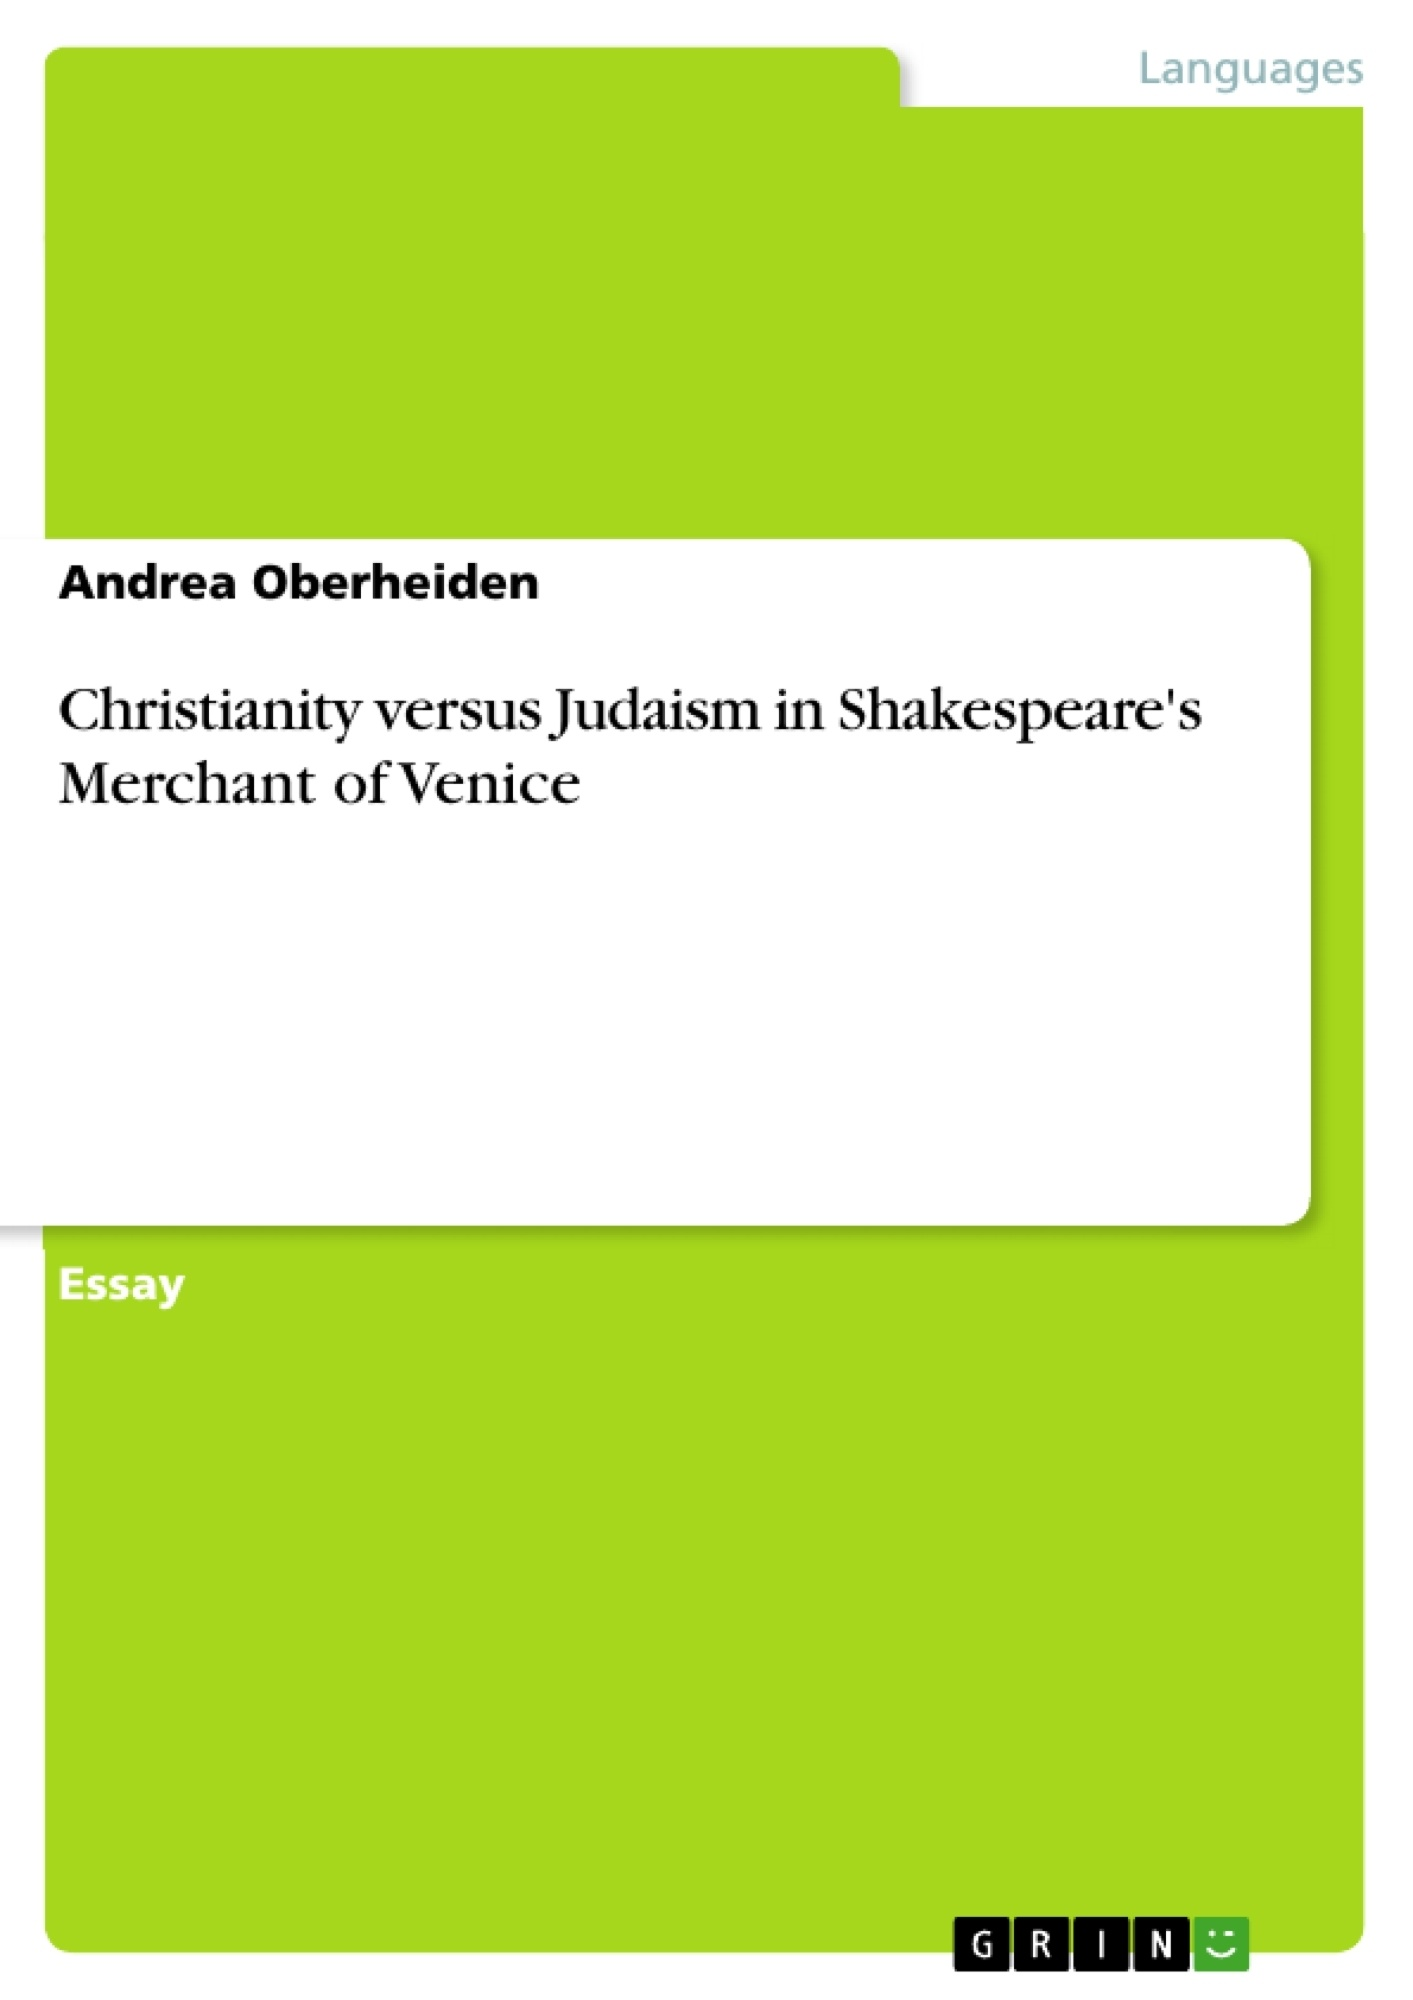 christianity versus judaism in shakespeare s merchant of venice upload your own papers earn money and win an iphone 7